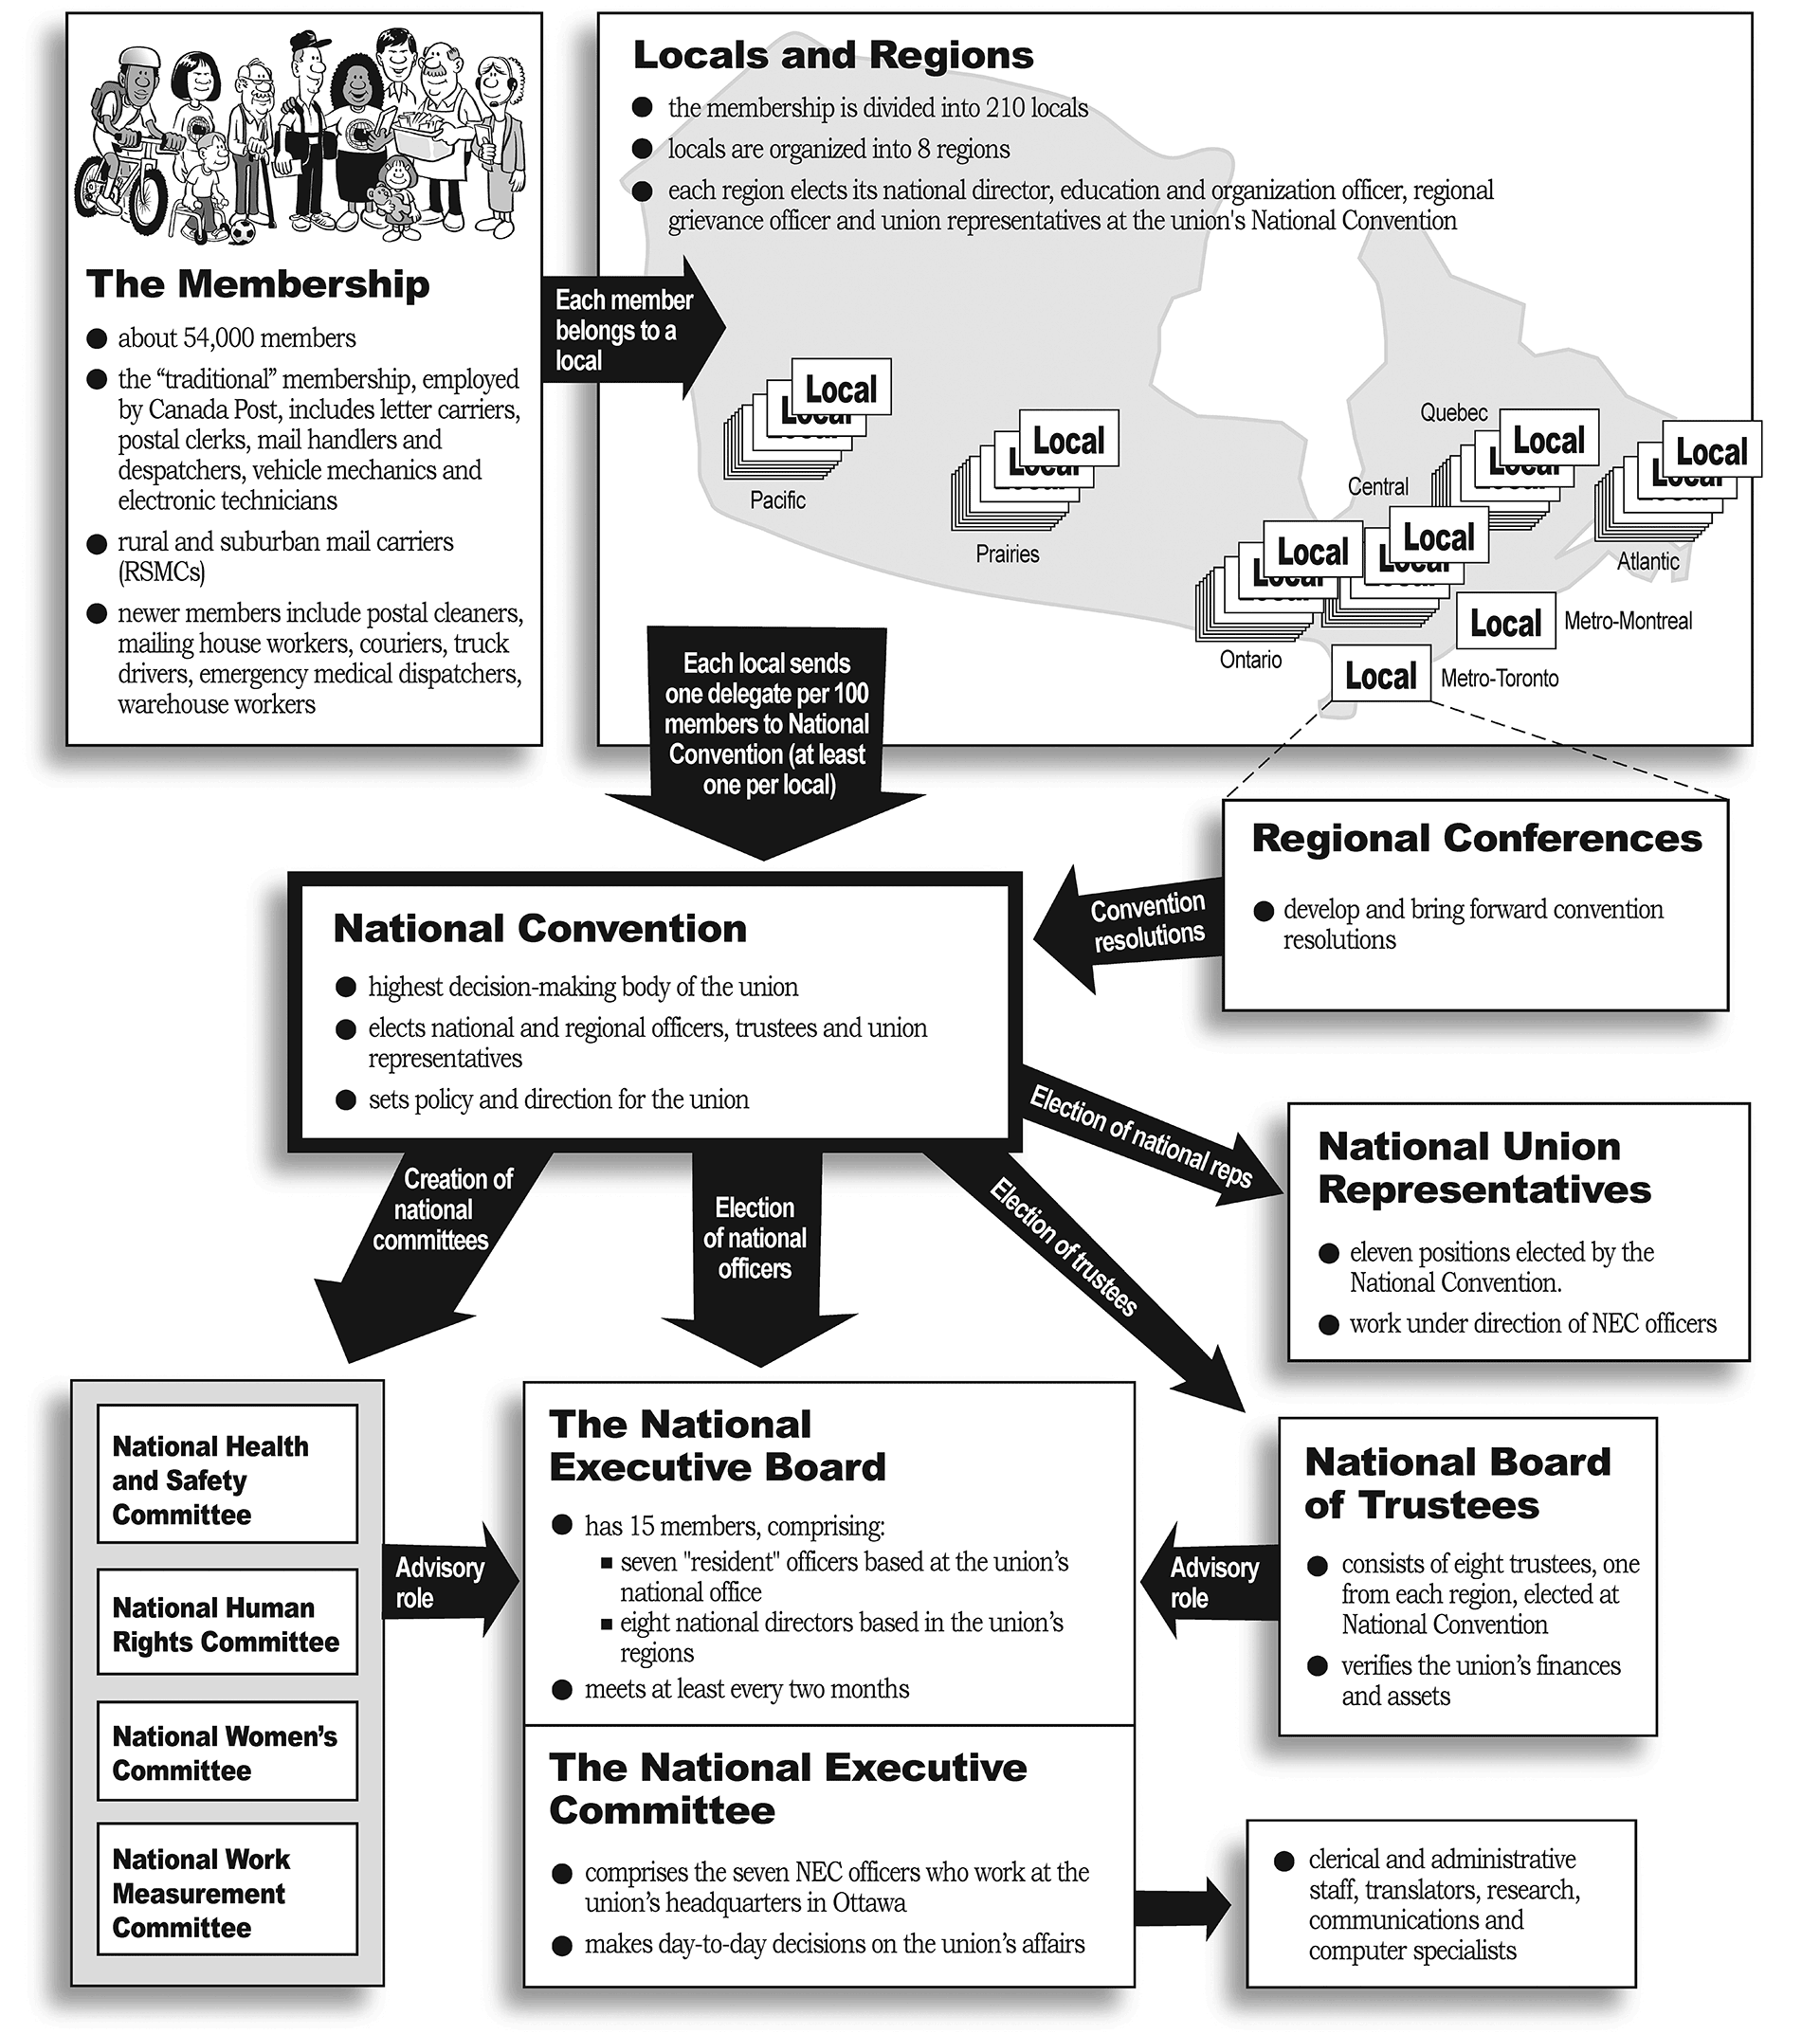 Organizational structure chart for the Canadian Union of Postal Workers